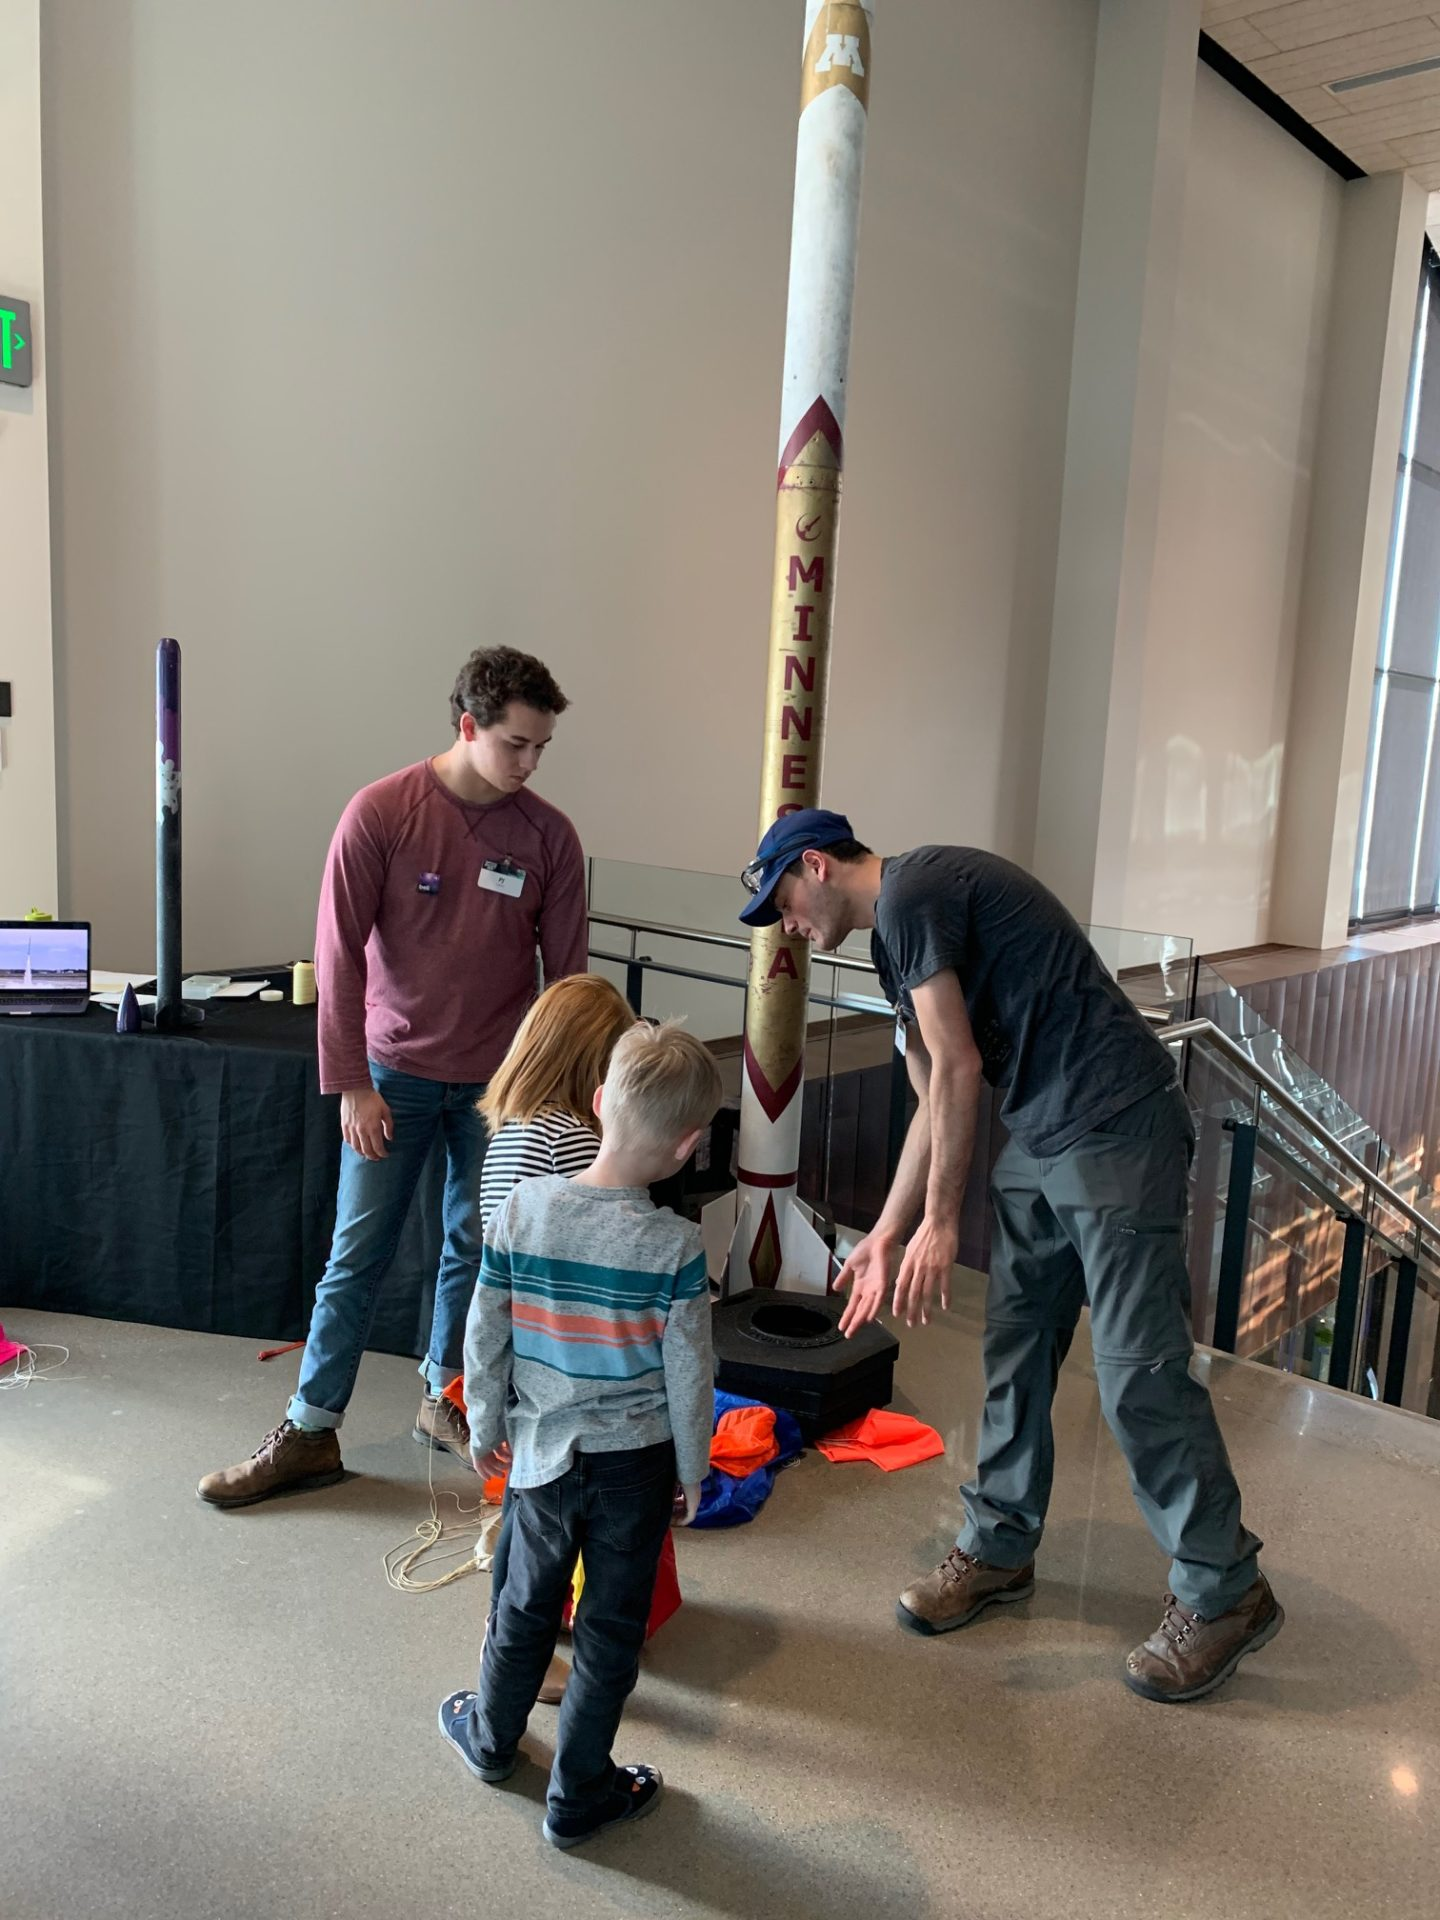 U of M students explain rocket features to young visitors